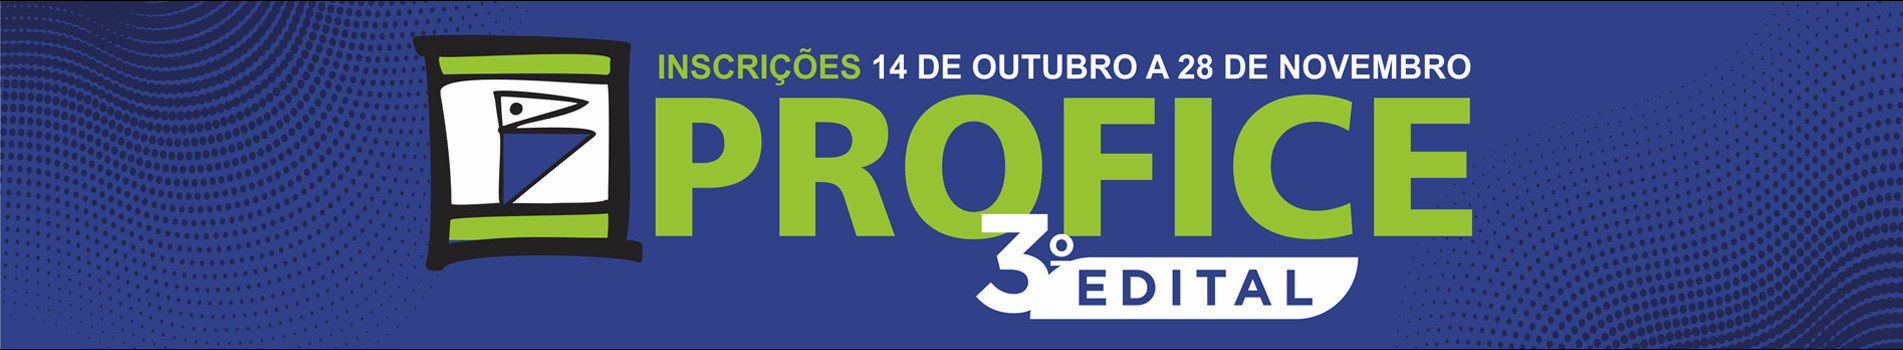 3º Edital do Profice